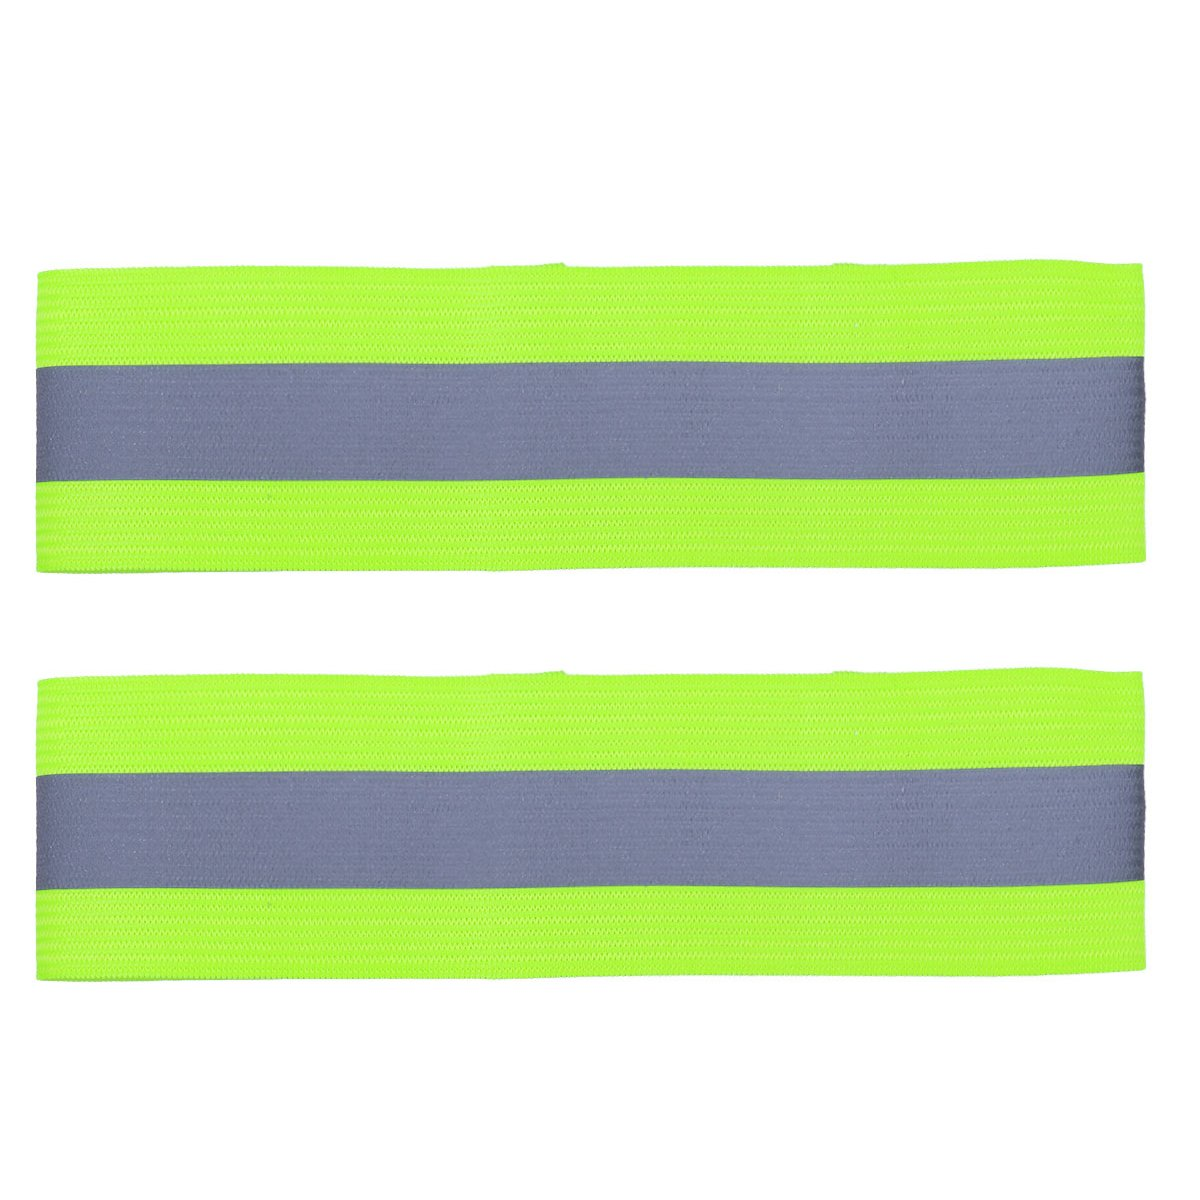 Freebily High Visibility Reflective Wristbands, Reflective Ankle Bands, Safety Reflector Belt Straps for Jogging, Walking, Cycling Type A Green 2pcs